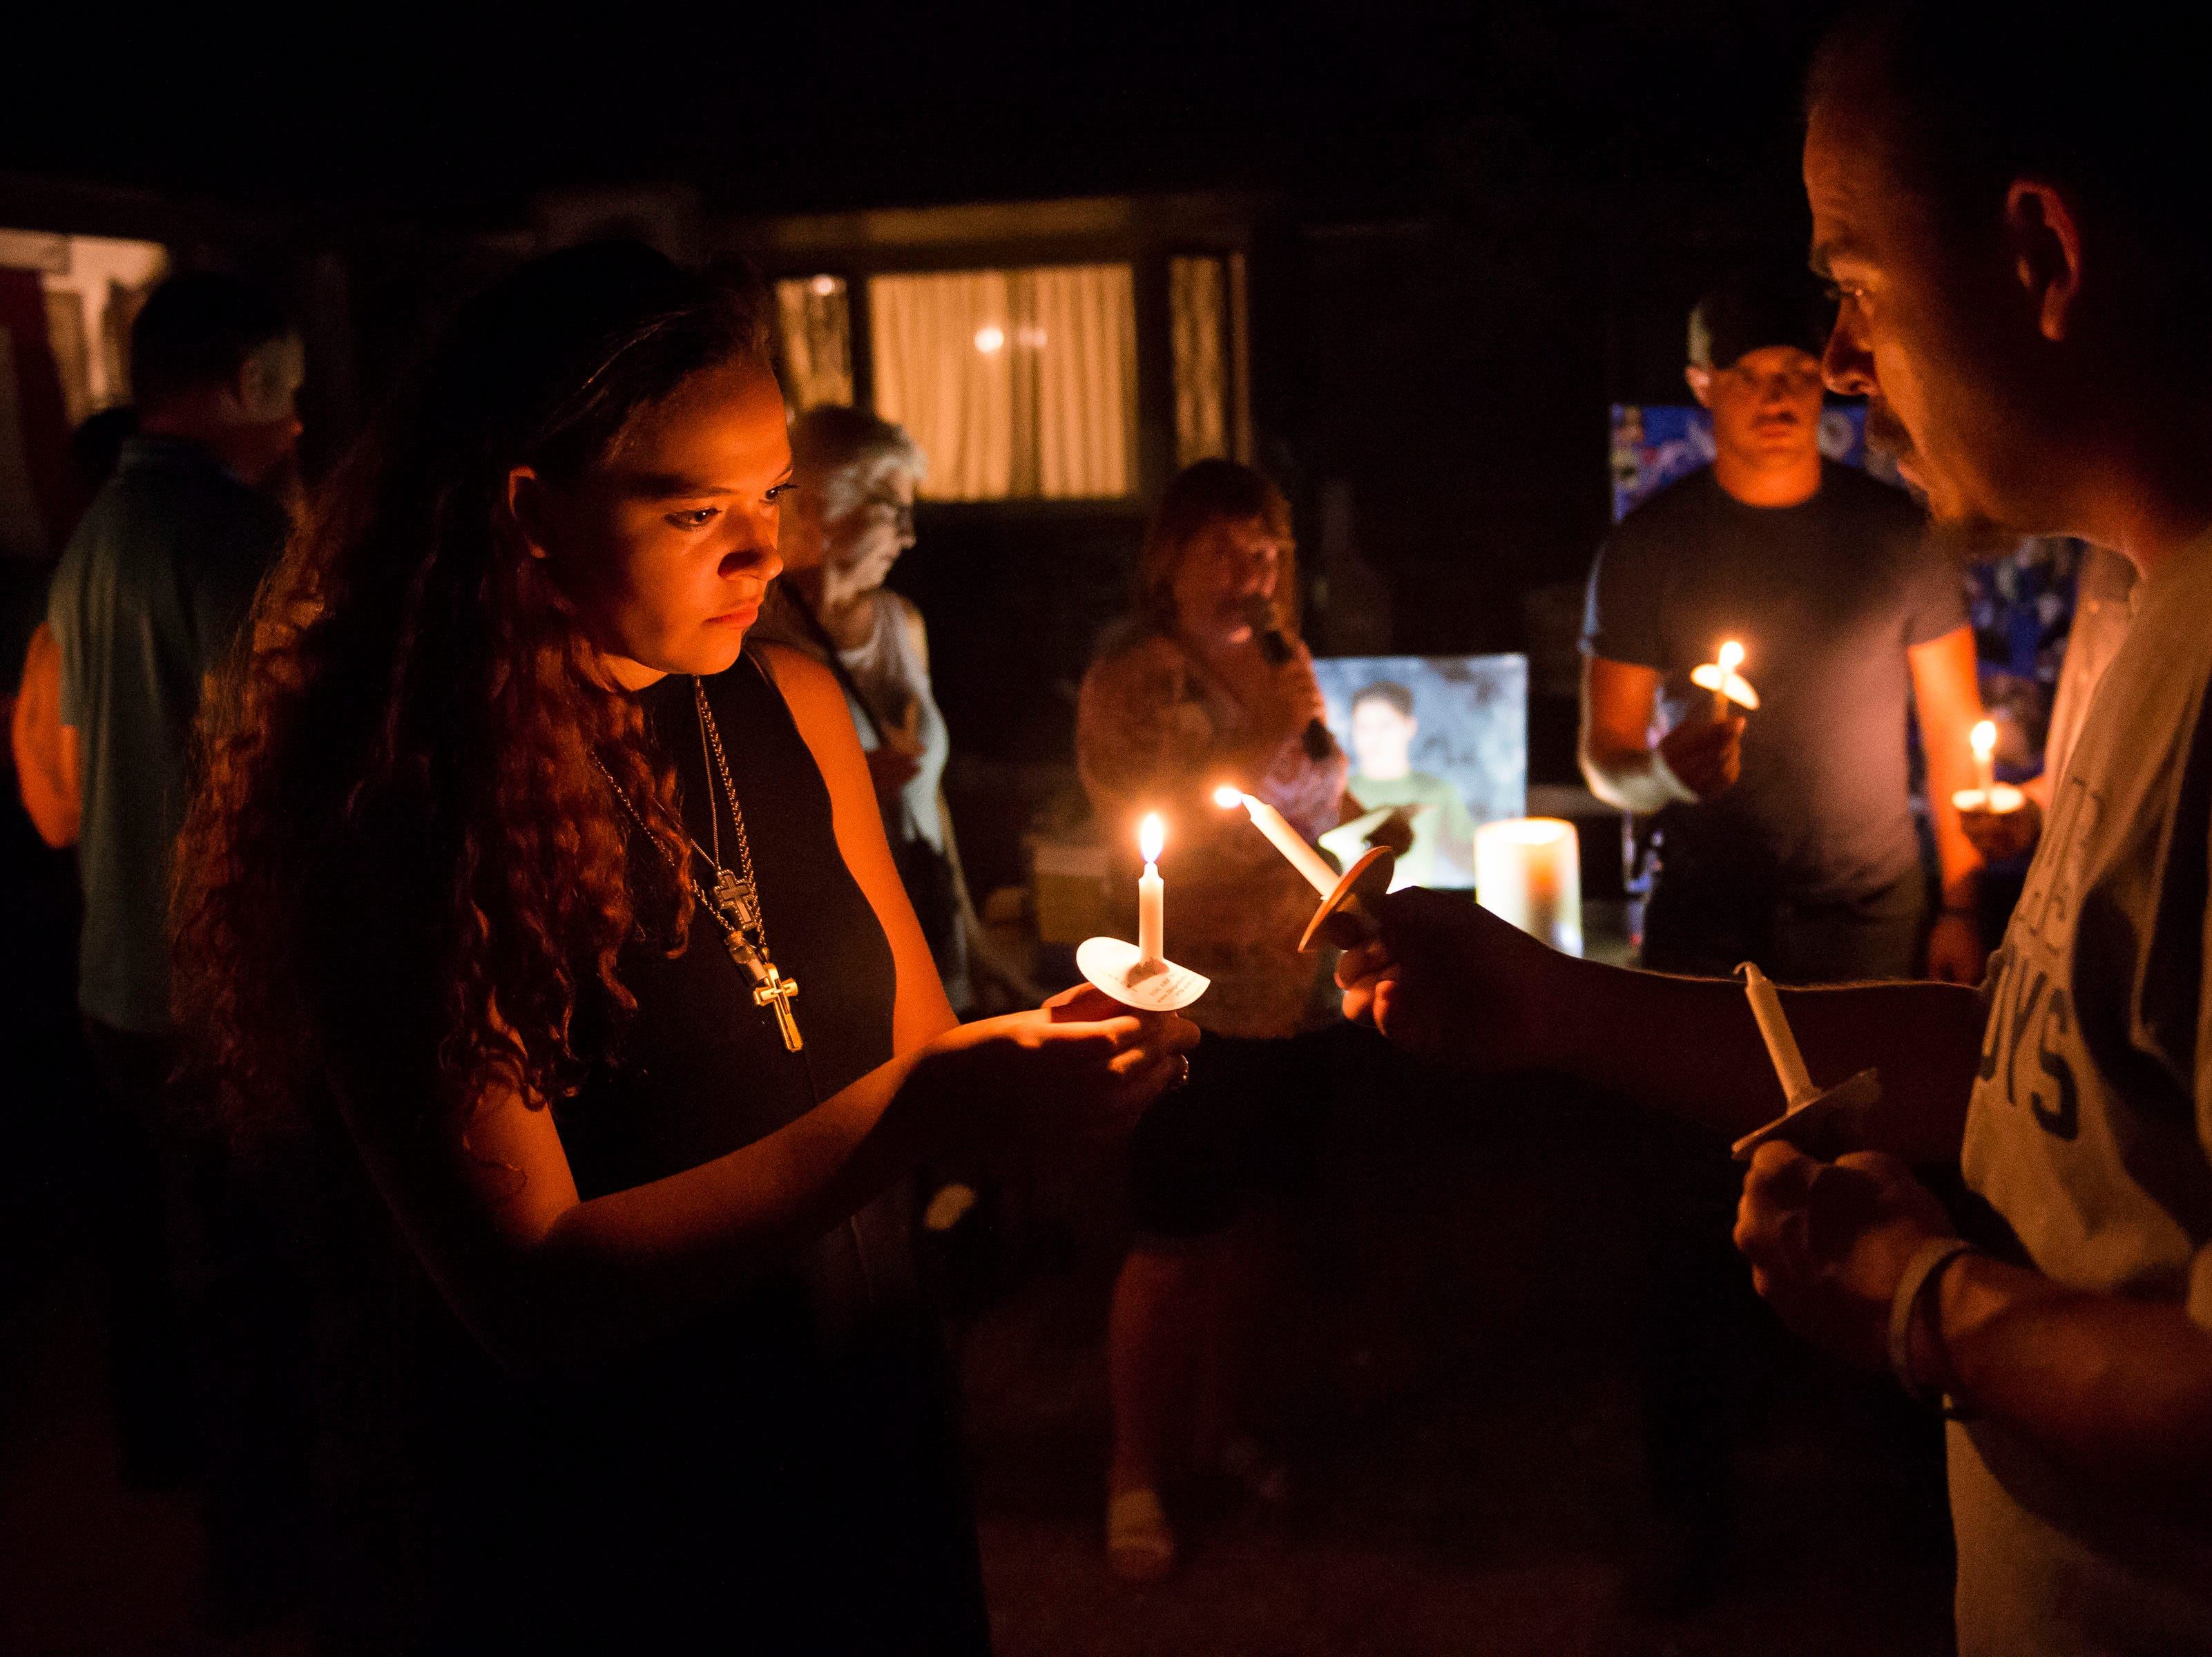 Mourners light candles during a vigil in front of the home of Aric Whaley, a 17 year old who was fatally shot at the home early Tuesday morning, Sept. 4, as seen on Saturday, Sept. 15, 2018, in Loveland, Colo. Gabriel Jesus Romero Ventura, 18, was arrested by Loveland police less than a mile from the residence on suspicion of manslaughter, first-degree assault and prohibited use of a weapon.